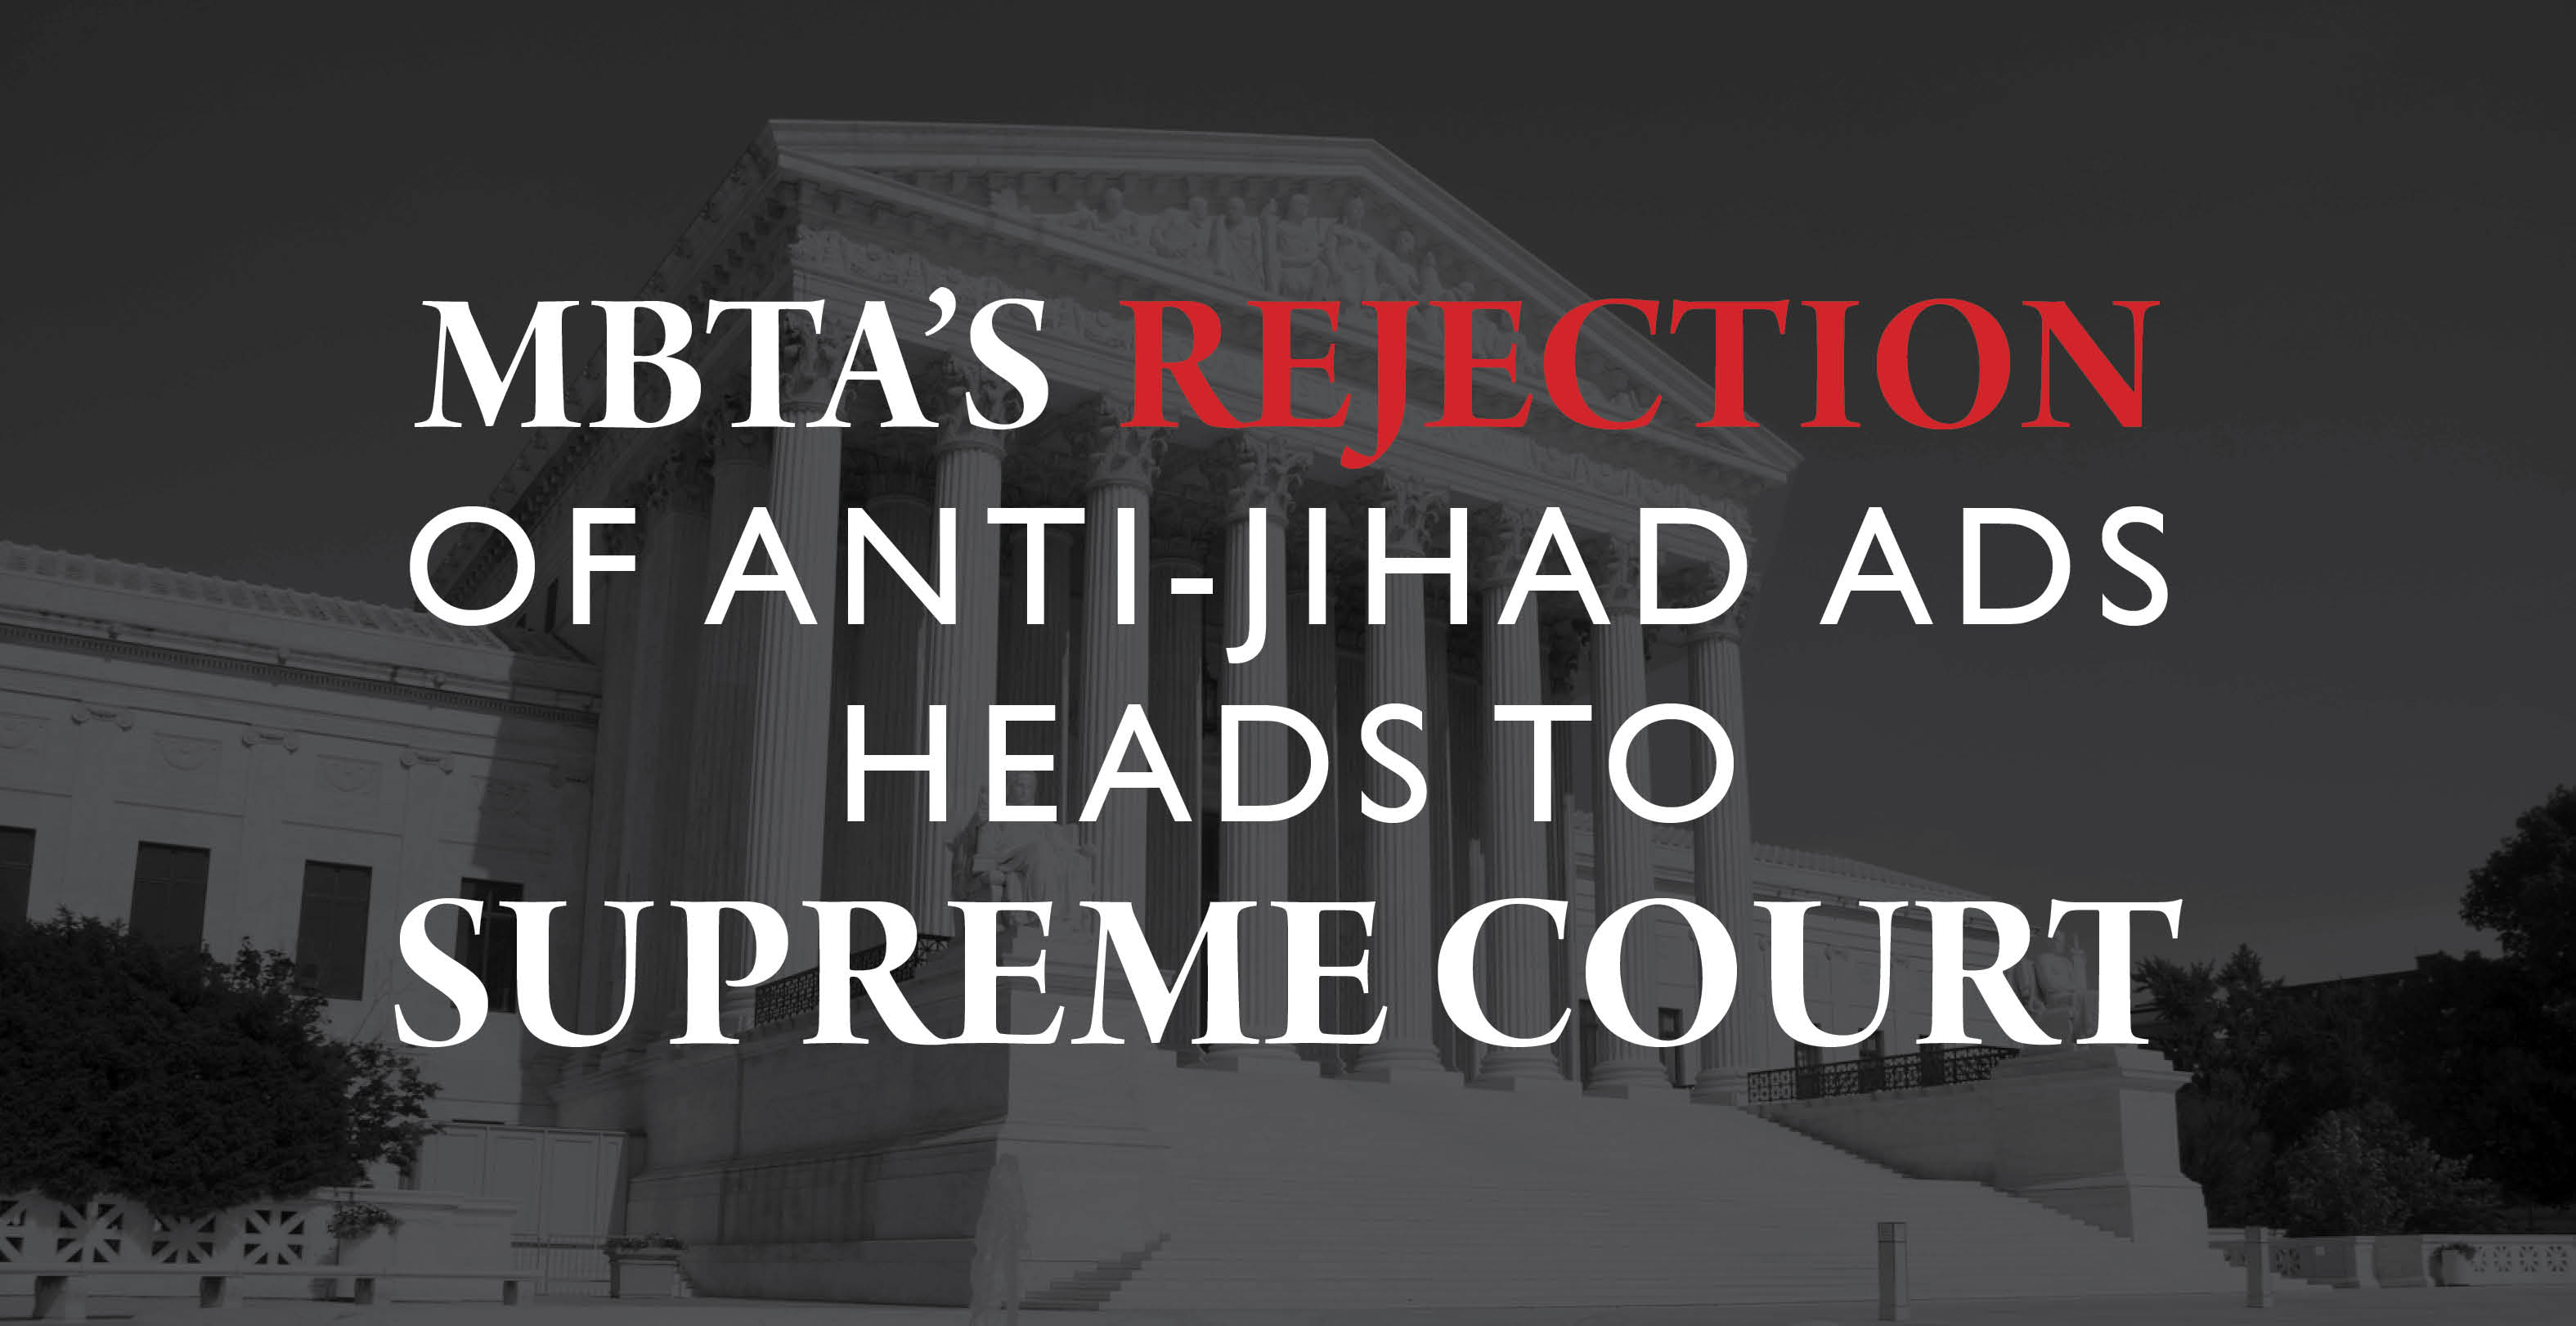 Anti-Jihad Ads Case Heads to SCOTUS